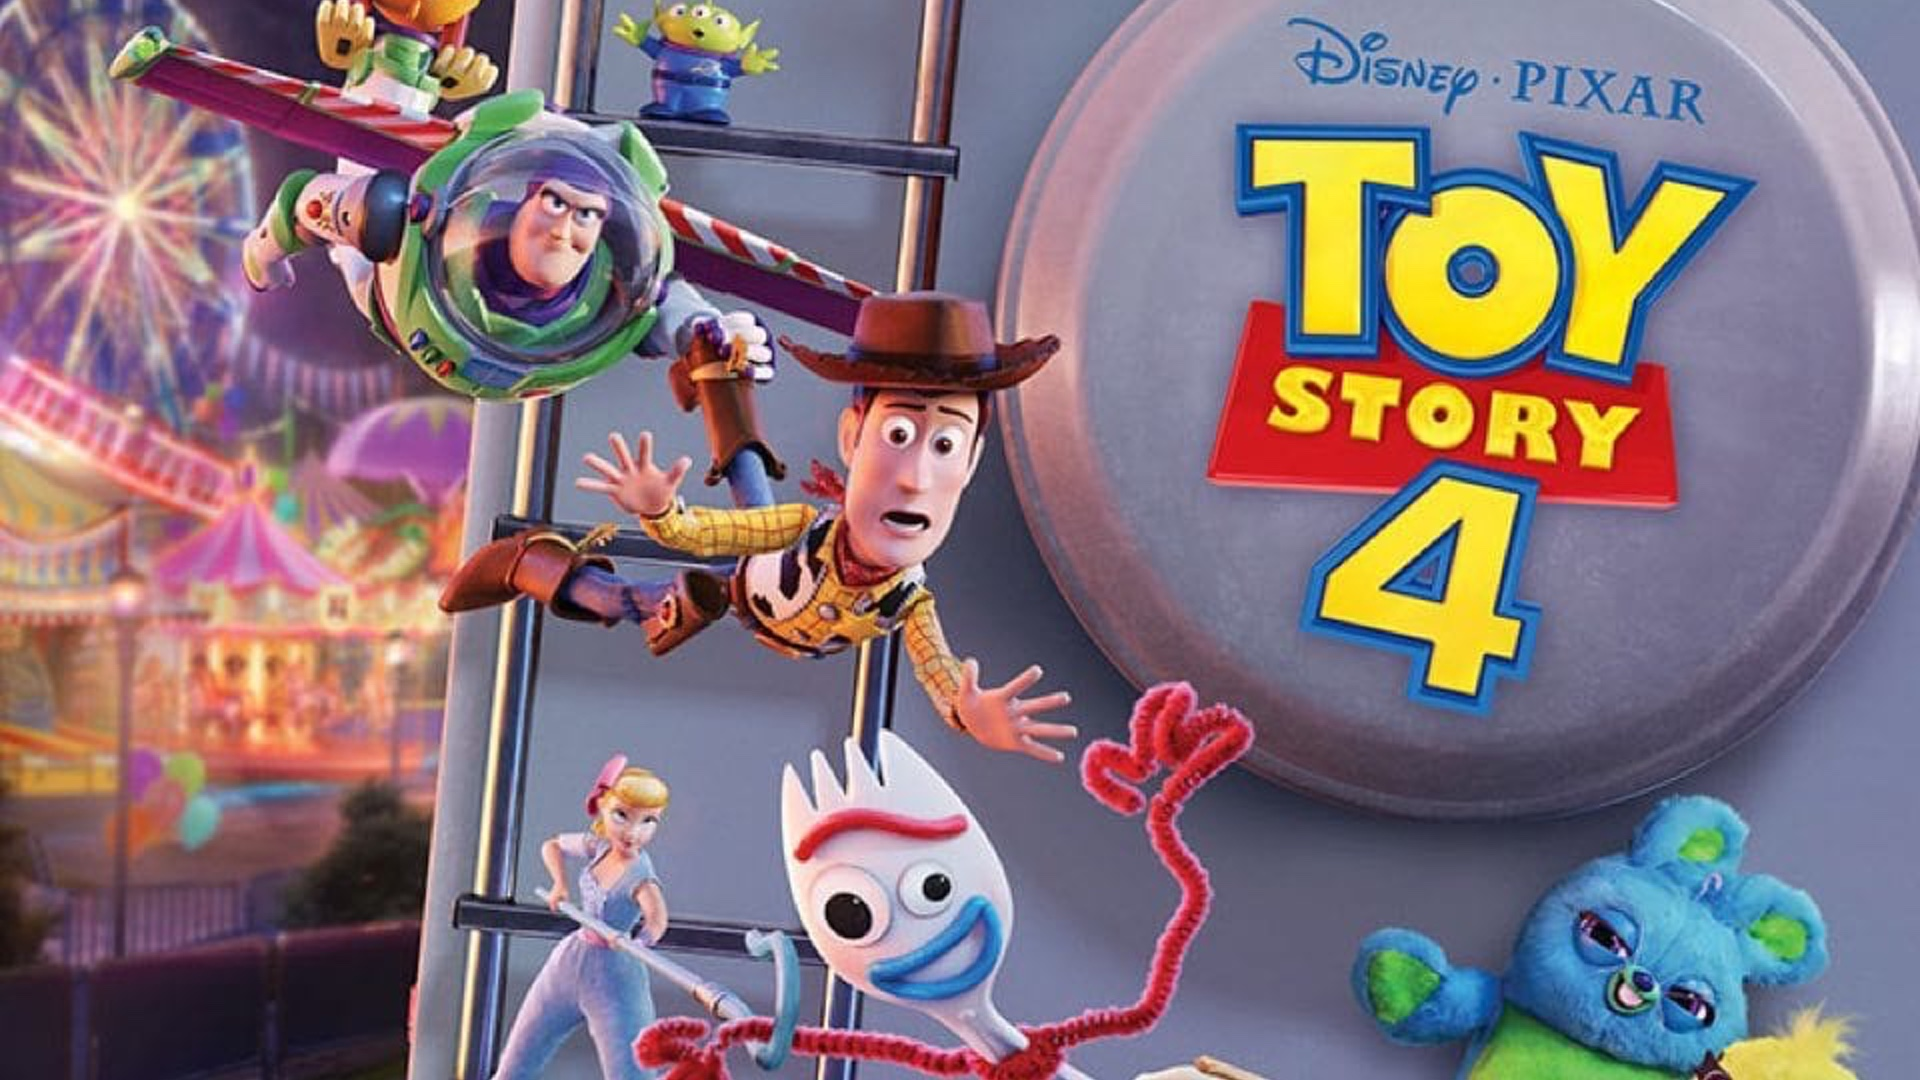 toy-story-4-gets-a-new-trailer-with-more-footage-a-poster-and-keanu-reeves-talks-about-duke-kaboom-social.jpg